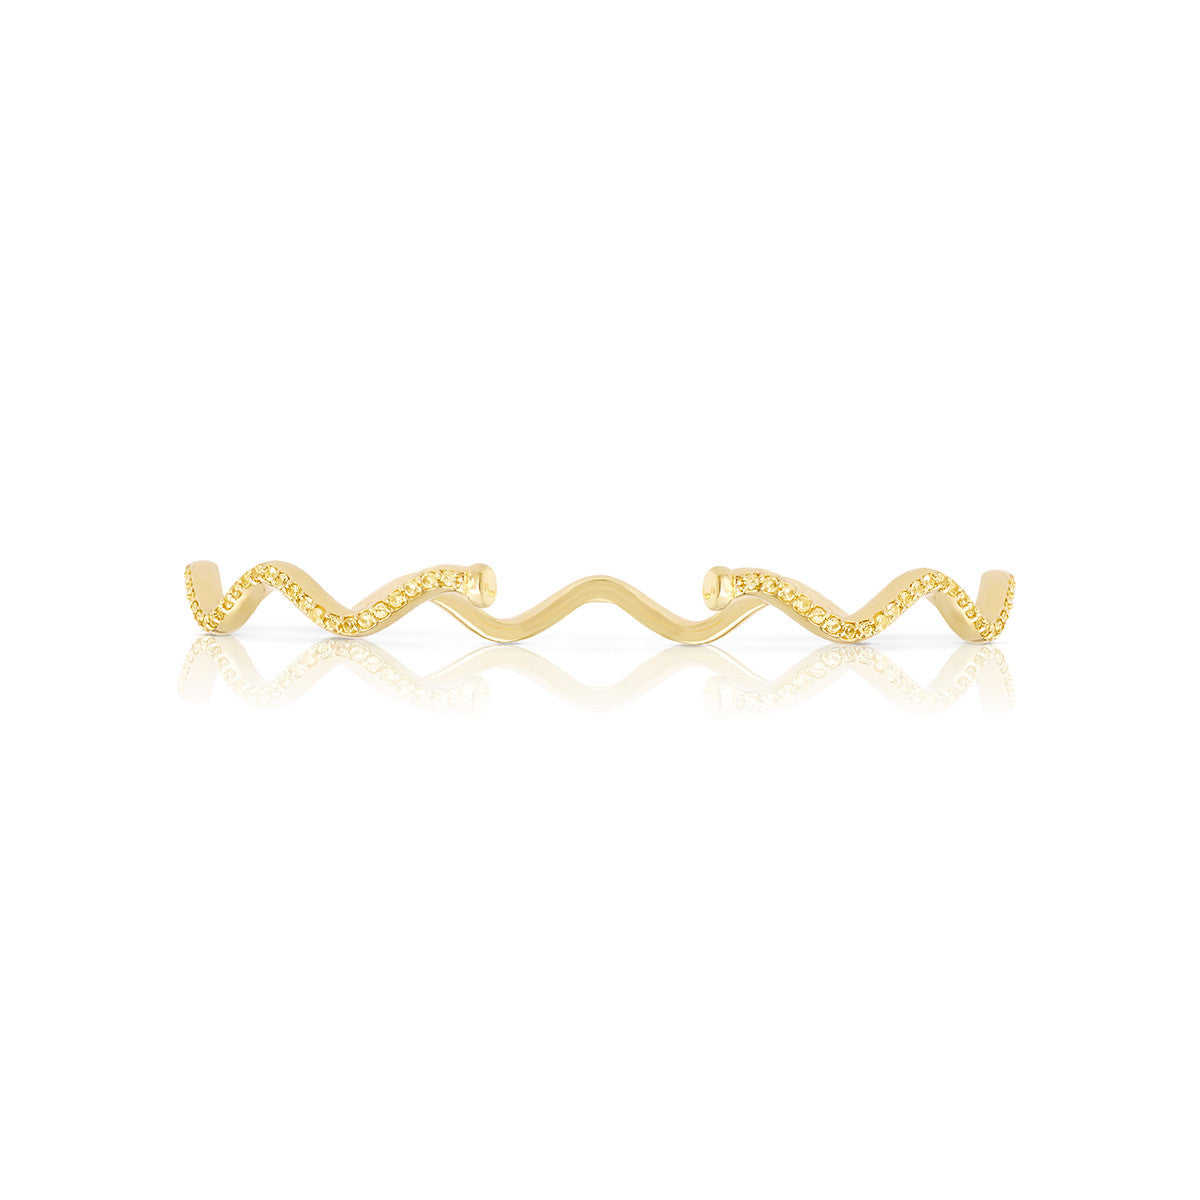 Solid Wave Cuff